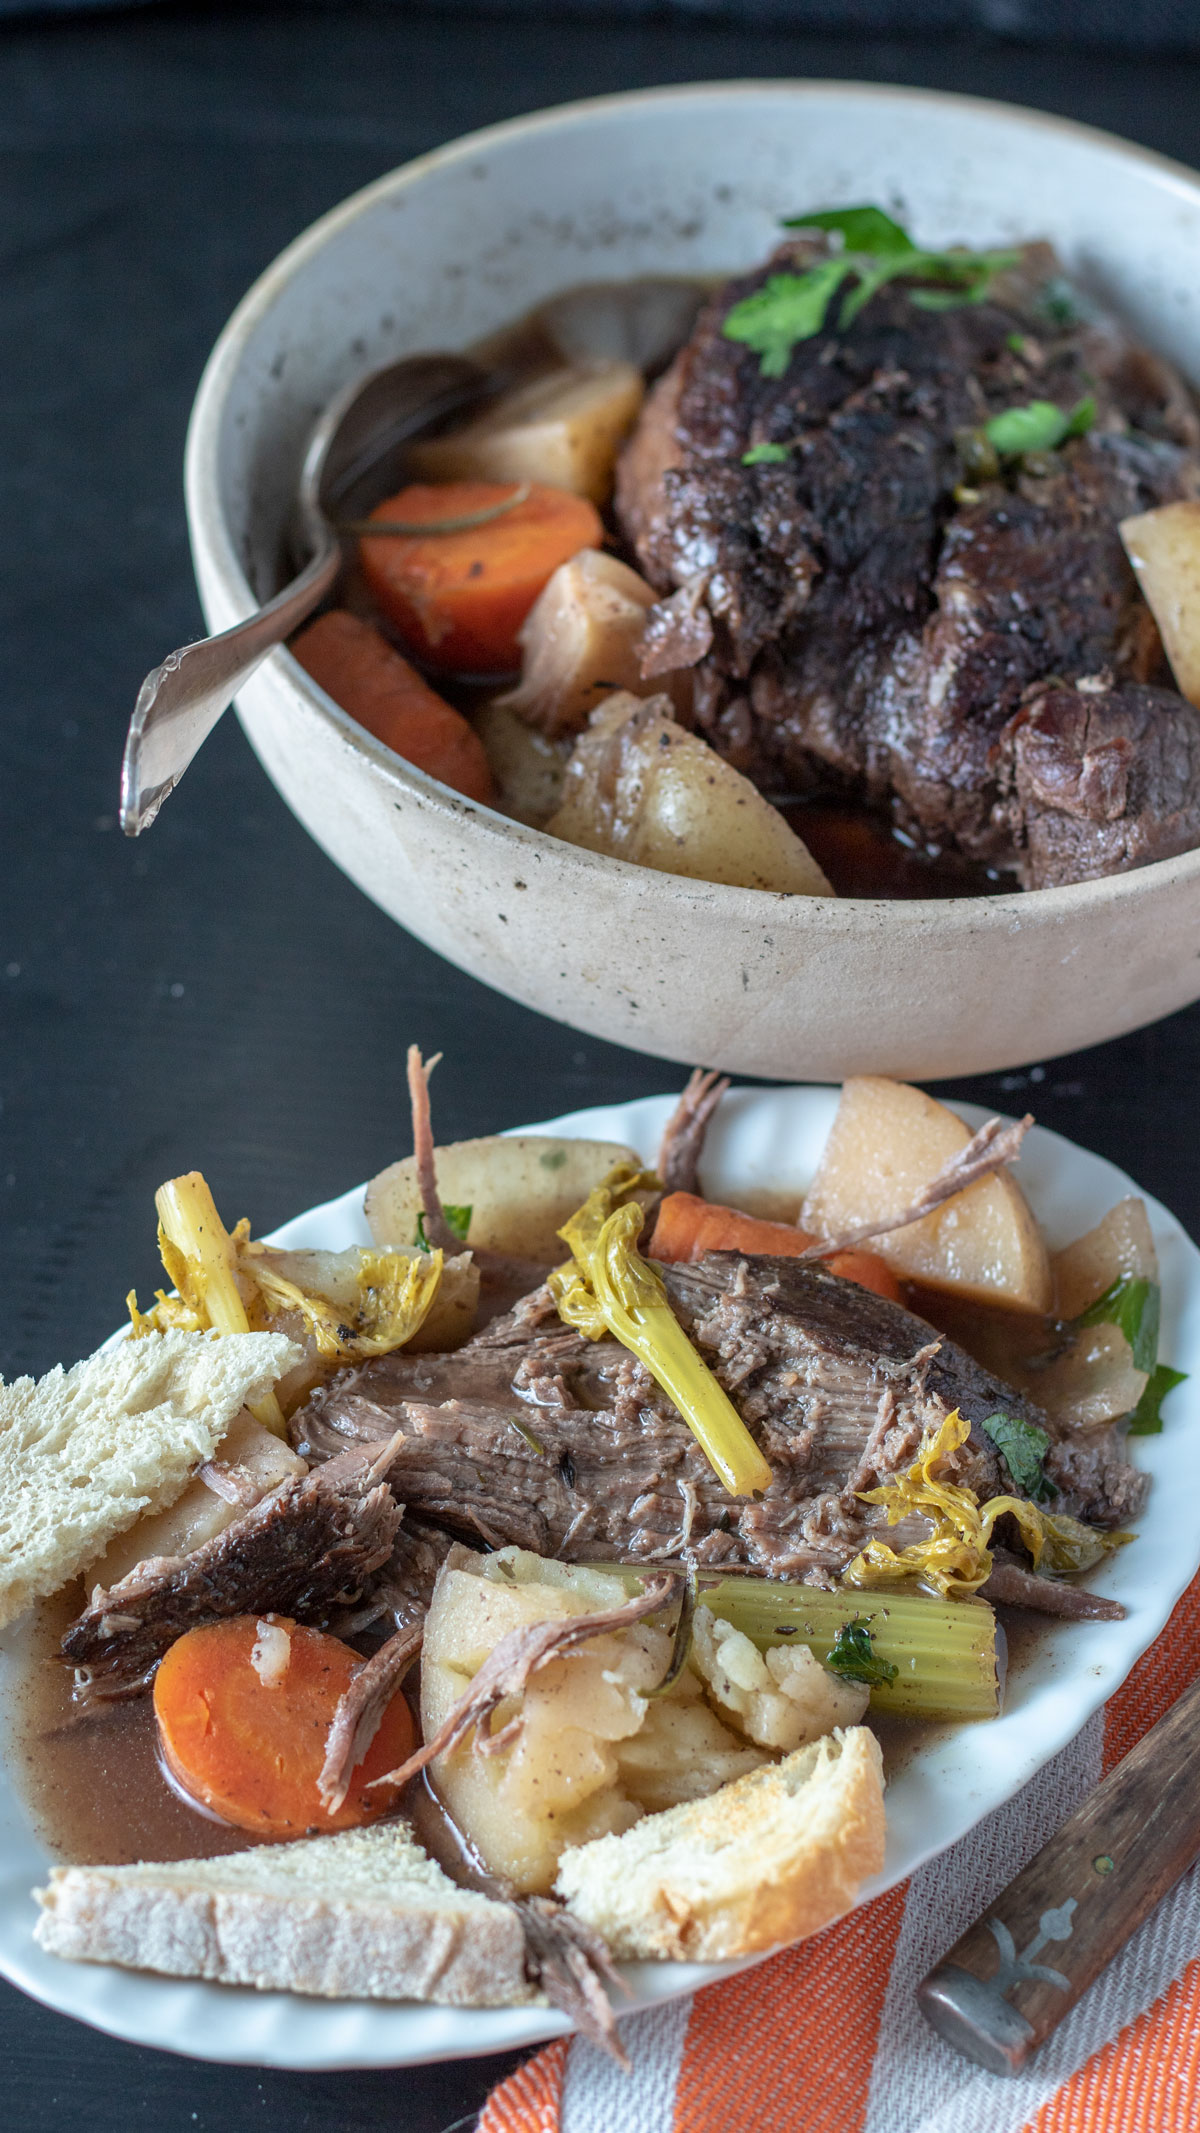 Serving of pot roast on white plate with serving bowl in background.